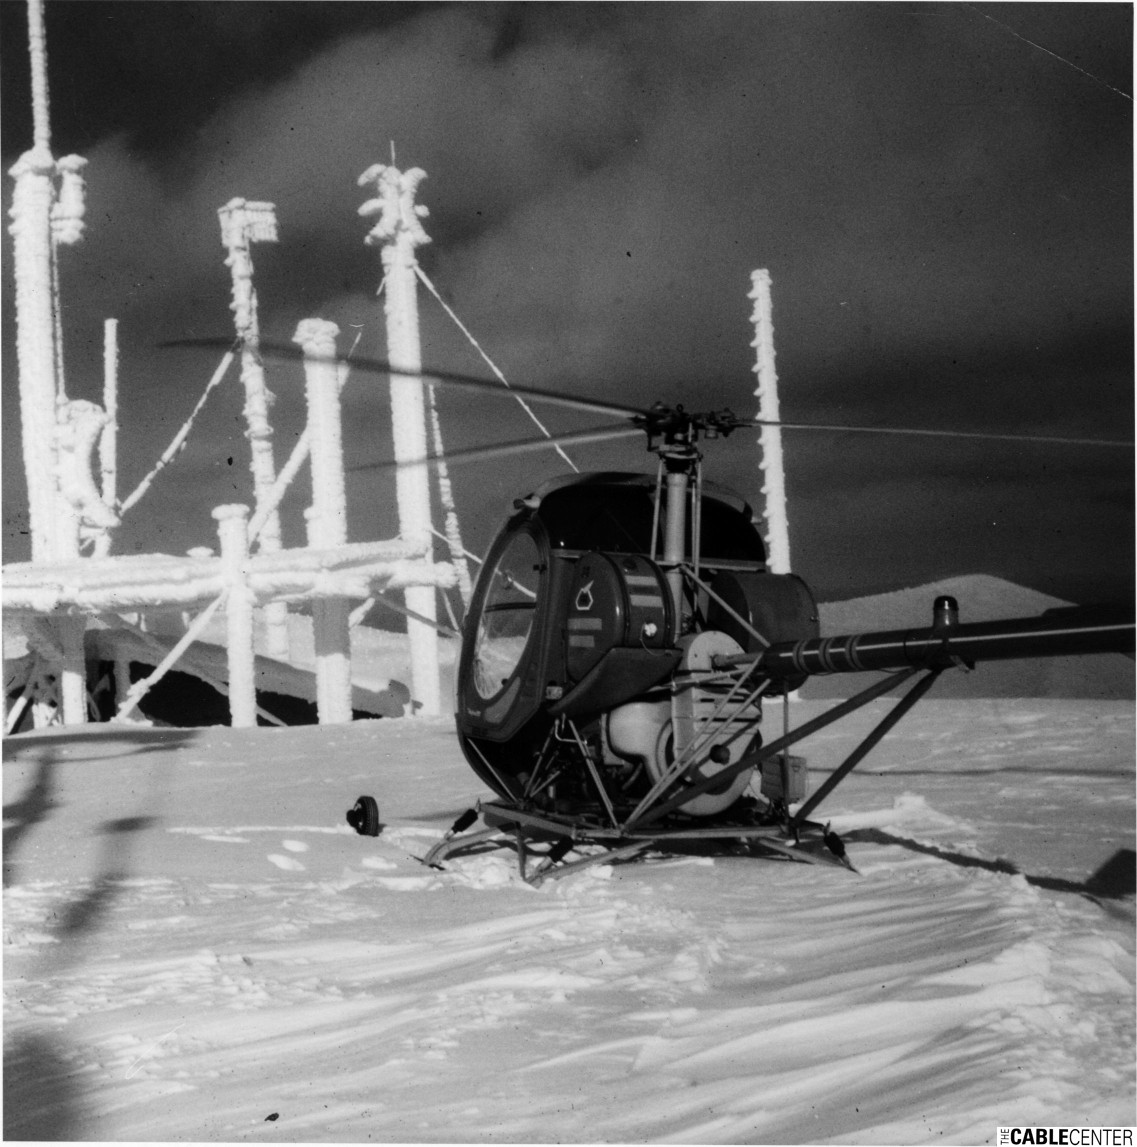 Helicopter parked in front of iced-over antenna equipment